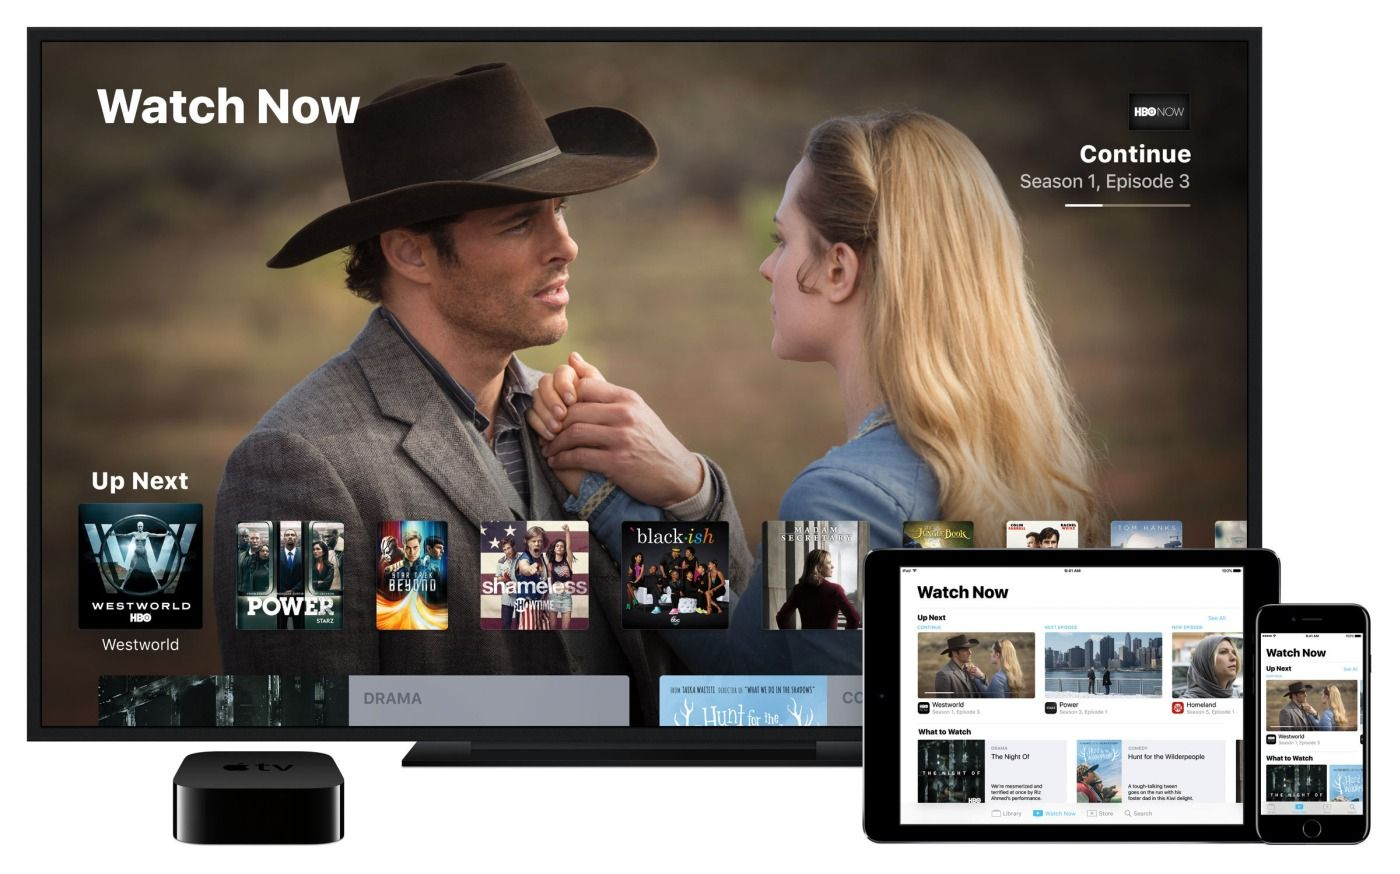 Apple TV universal search now supports Apple Music, TBS